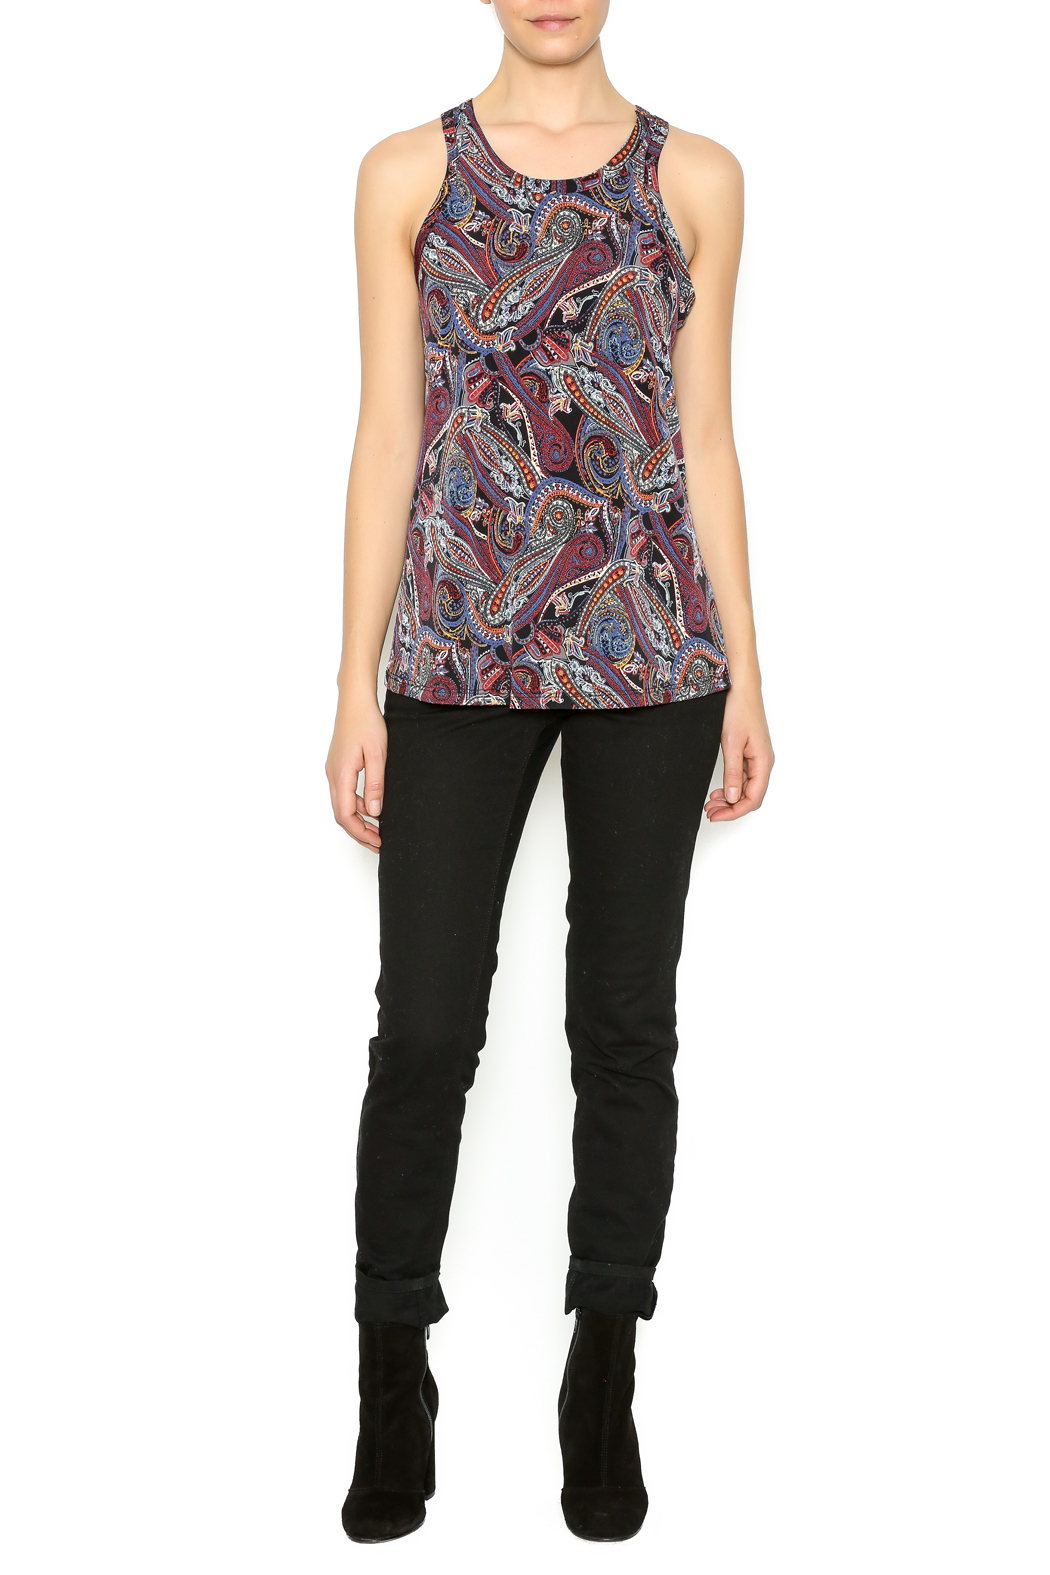 Veronica M Paisley Printed Tank - Front Full Image